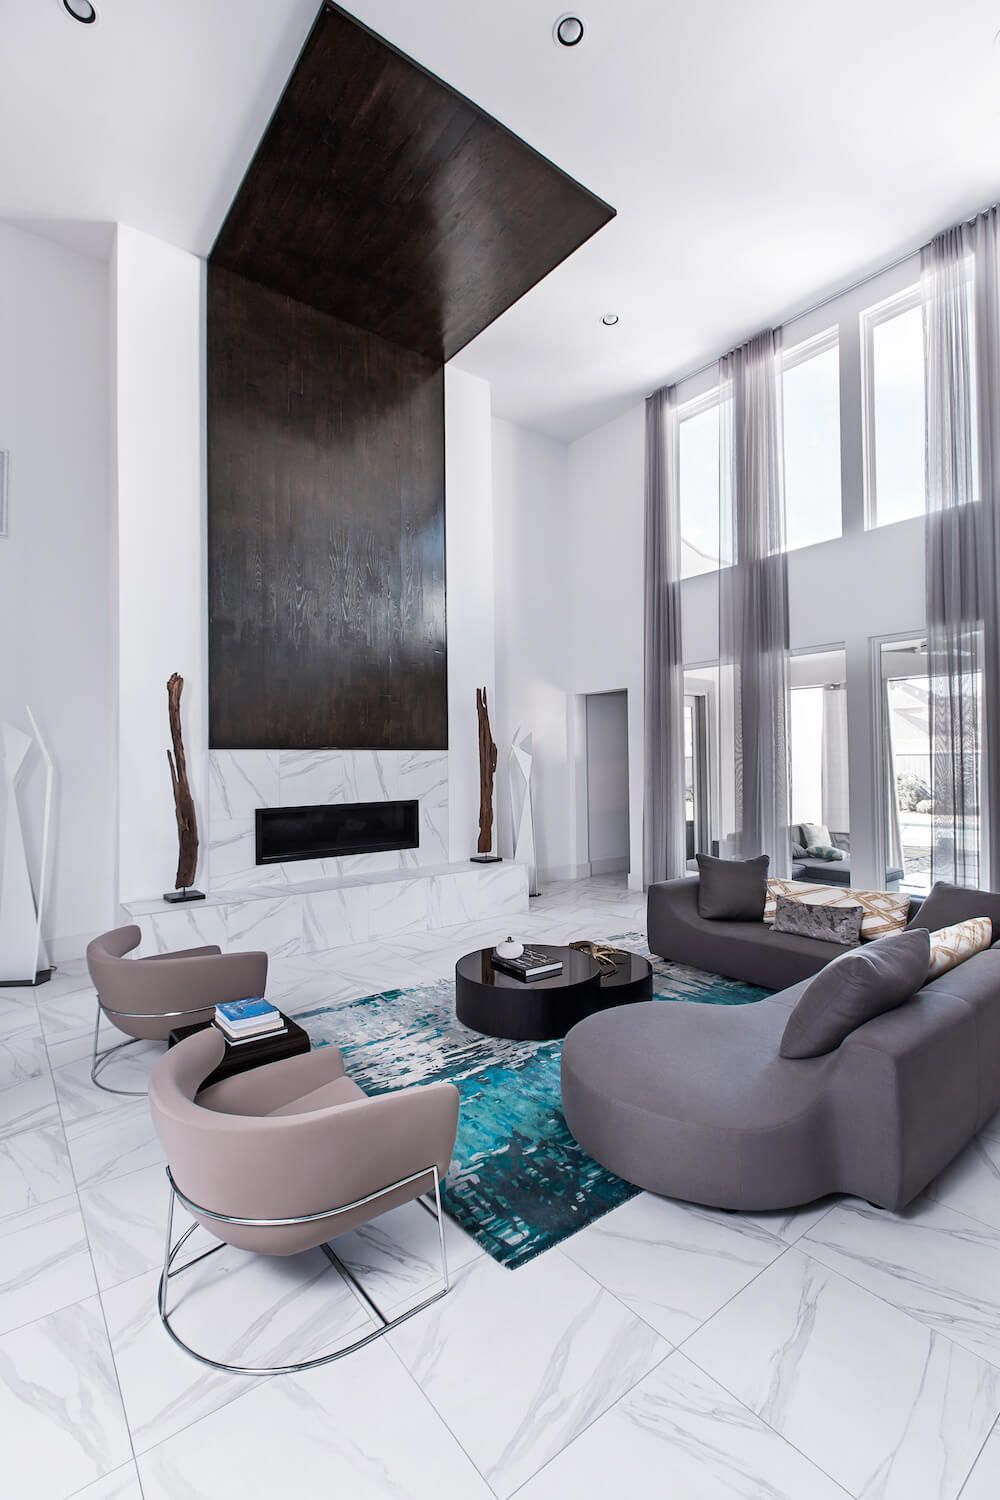 INTERIOR DESIGN PROJECTS| A modern residential project by Contour Interior design.the grey palette is used in every division  with pops of bright colors.|www.bocadolobo.com #interiordesignprojects #moderninteriors